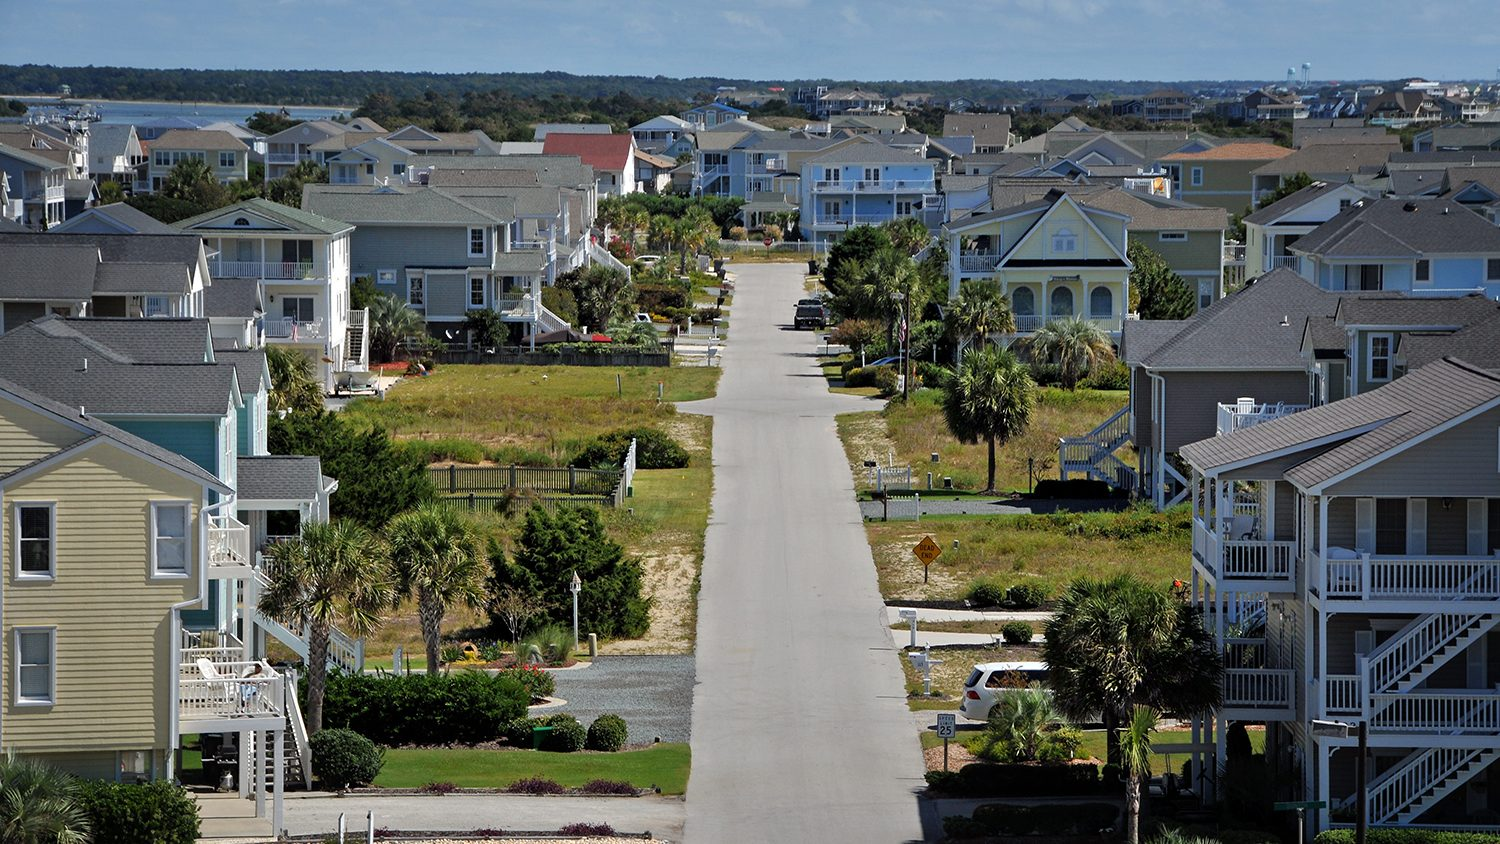 Aerial view of cottages and beach homes at Holden Beach